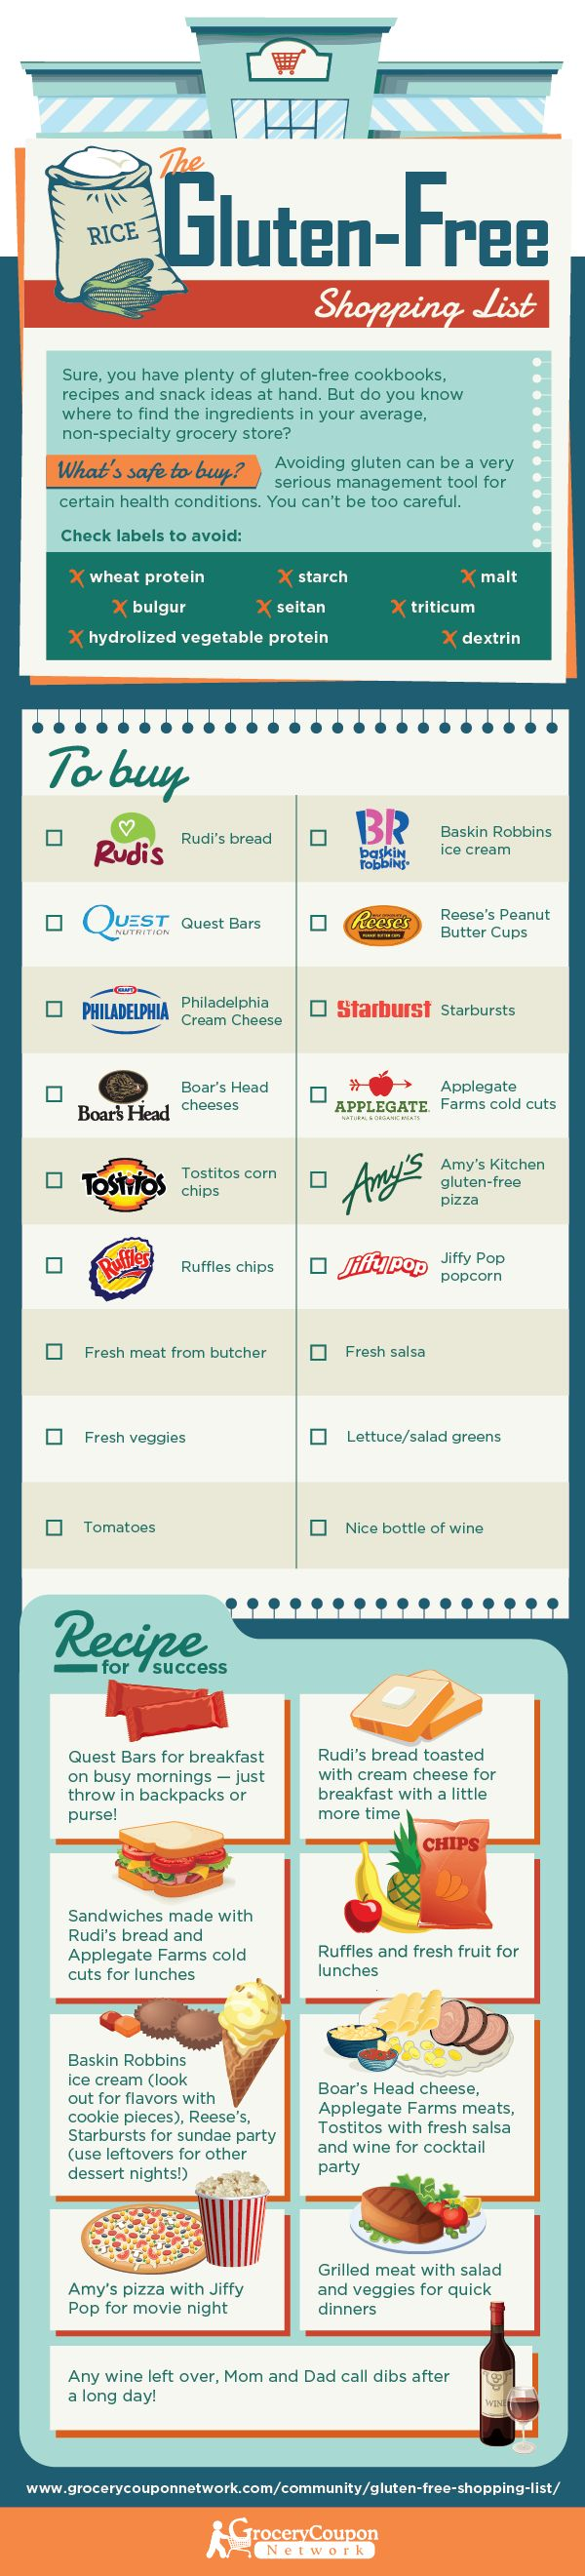 If you are shopping for gluten-free items at the grocery store, use this handy gluten-free shopping list to help you find what you need.